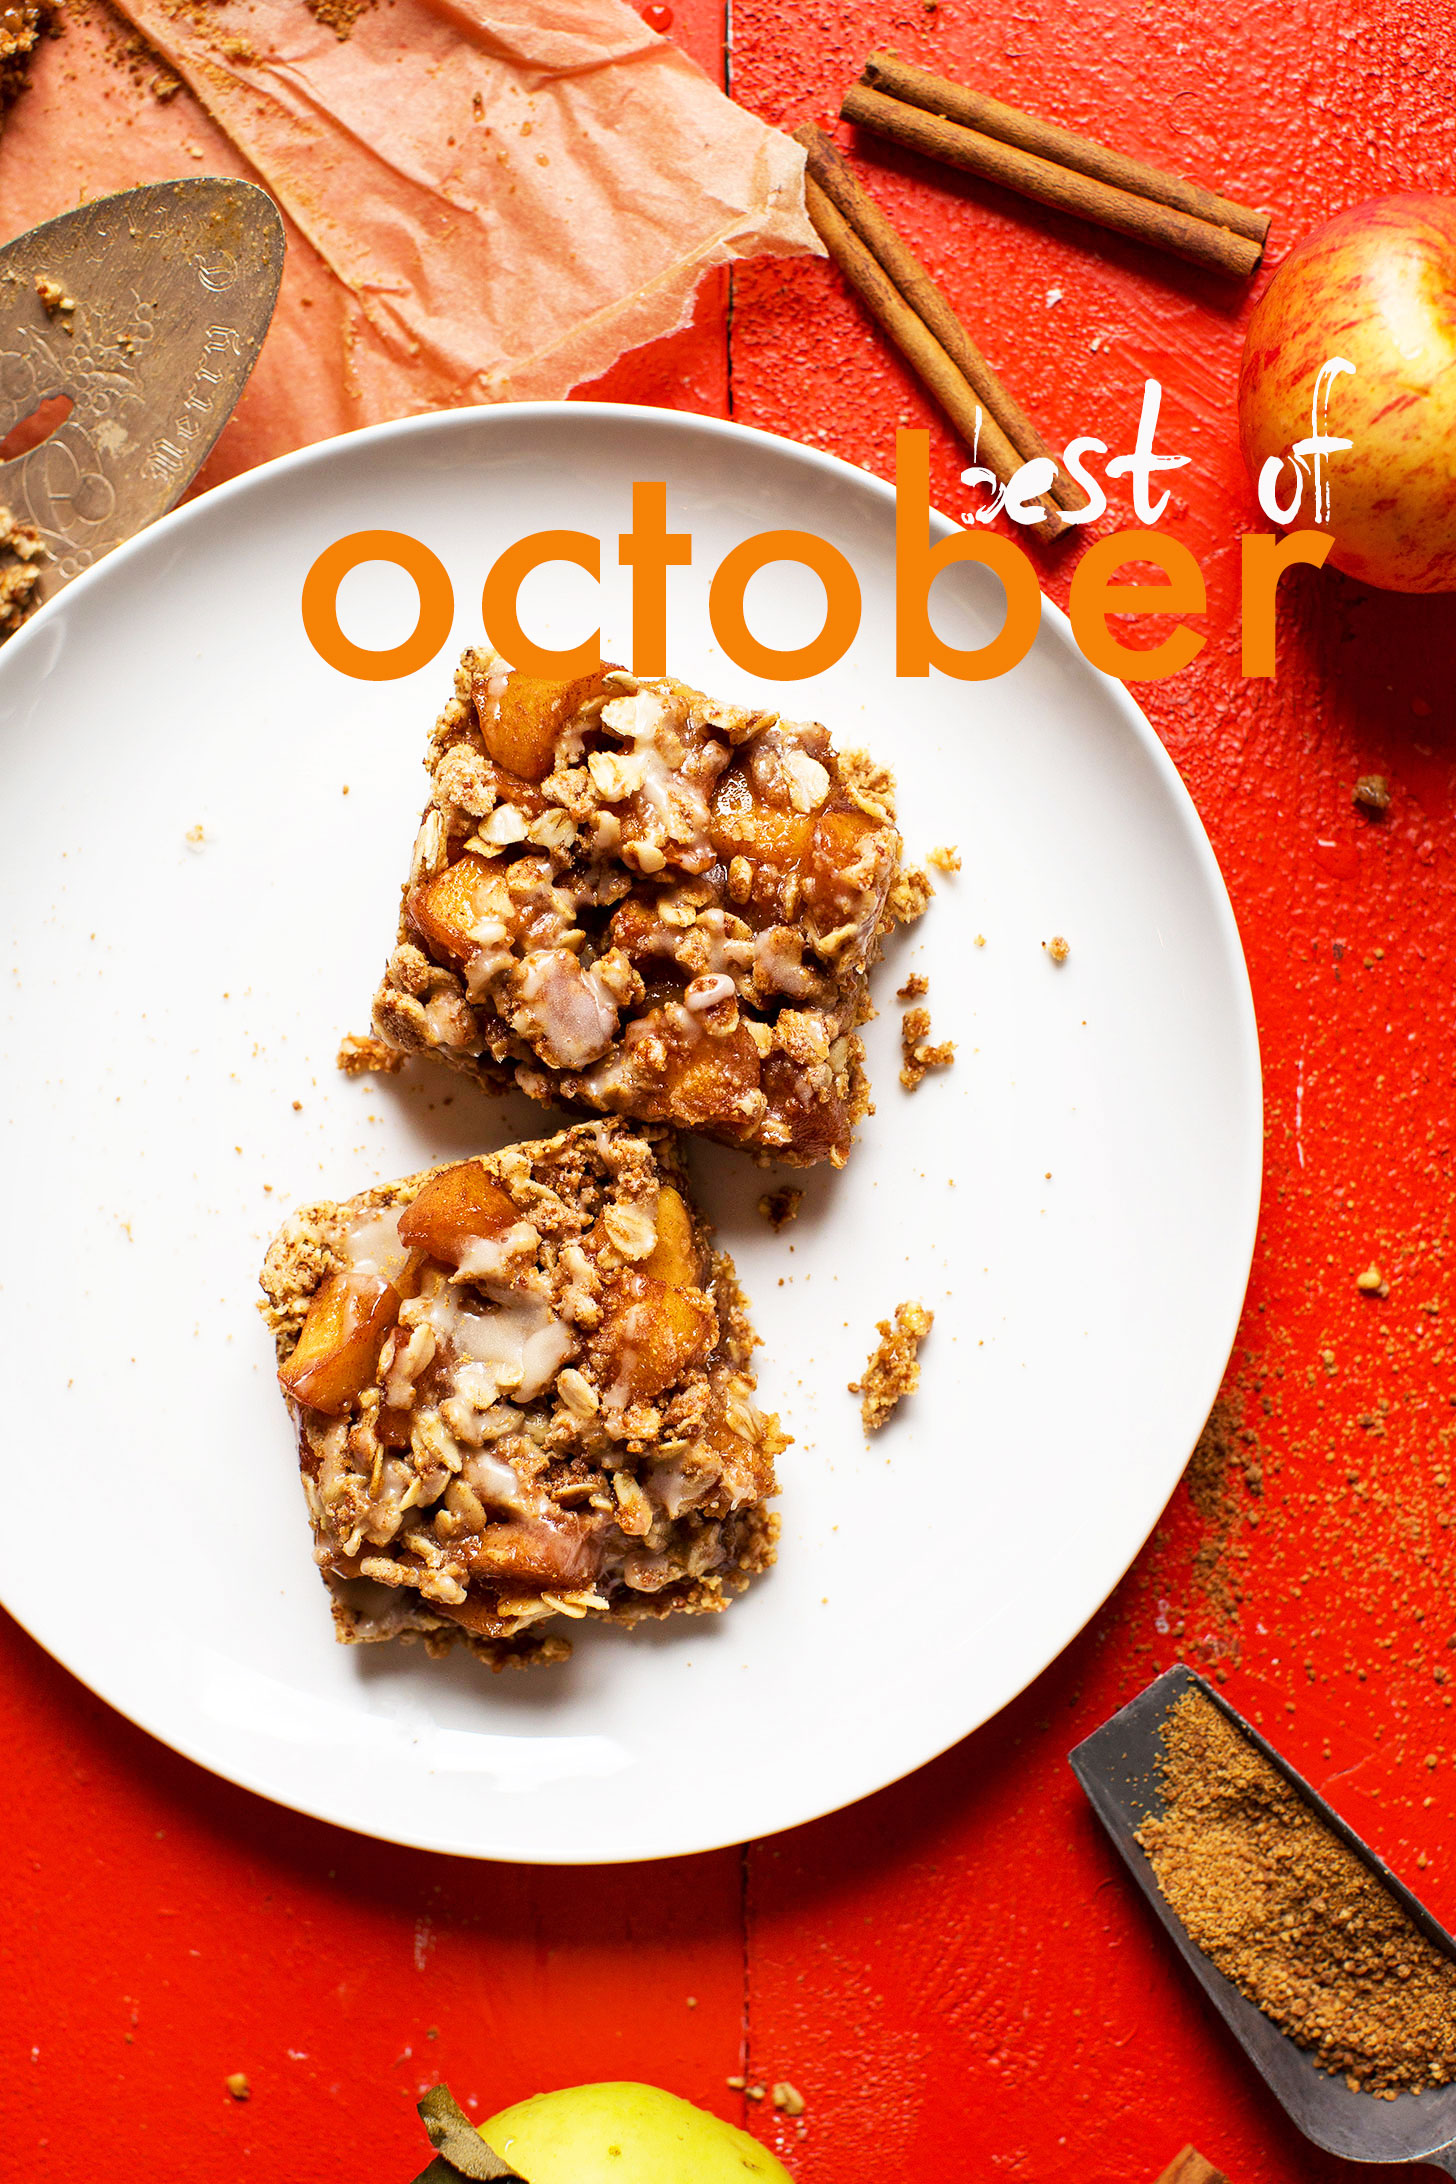 Two squares of tasty fall dessert for our best of October post